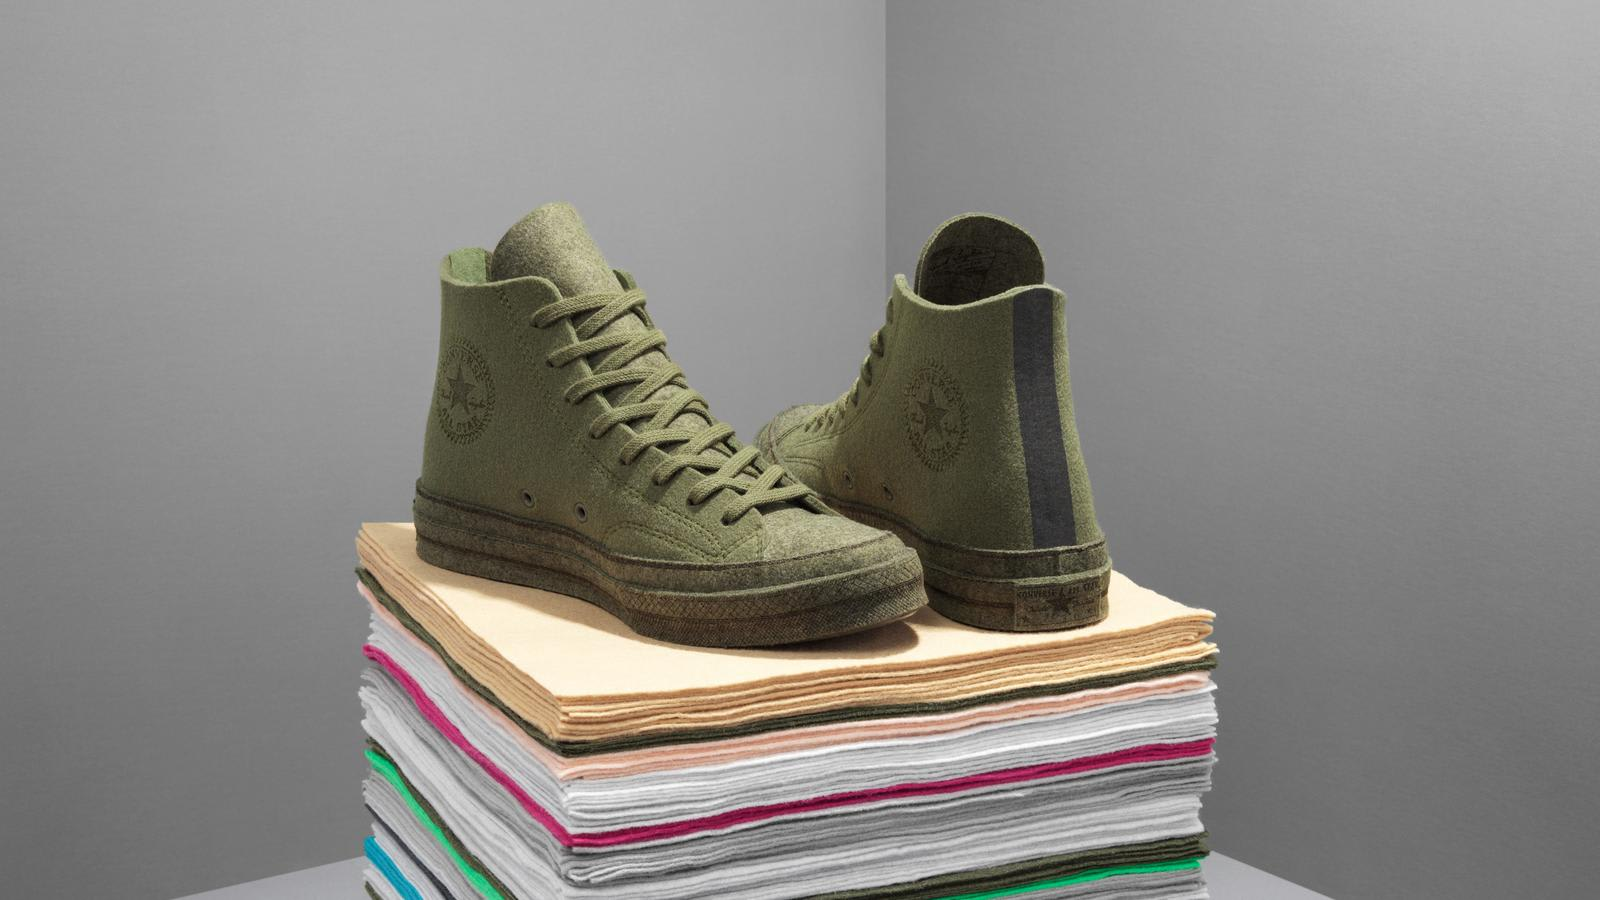 JW Anderson x Converse Chuck 70 Felt 'Olive' (Pair)